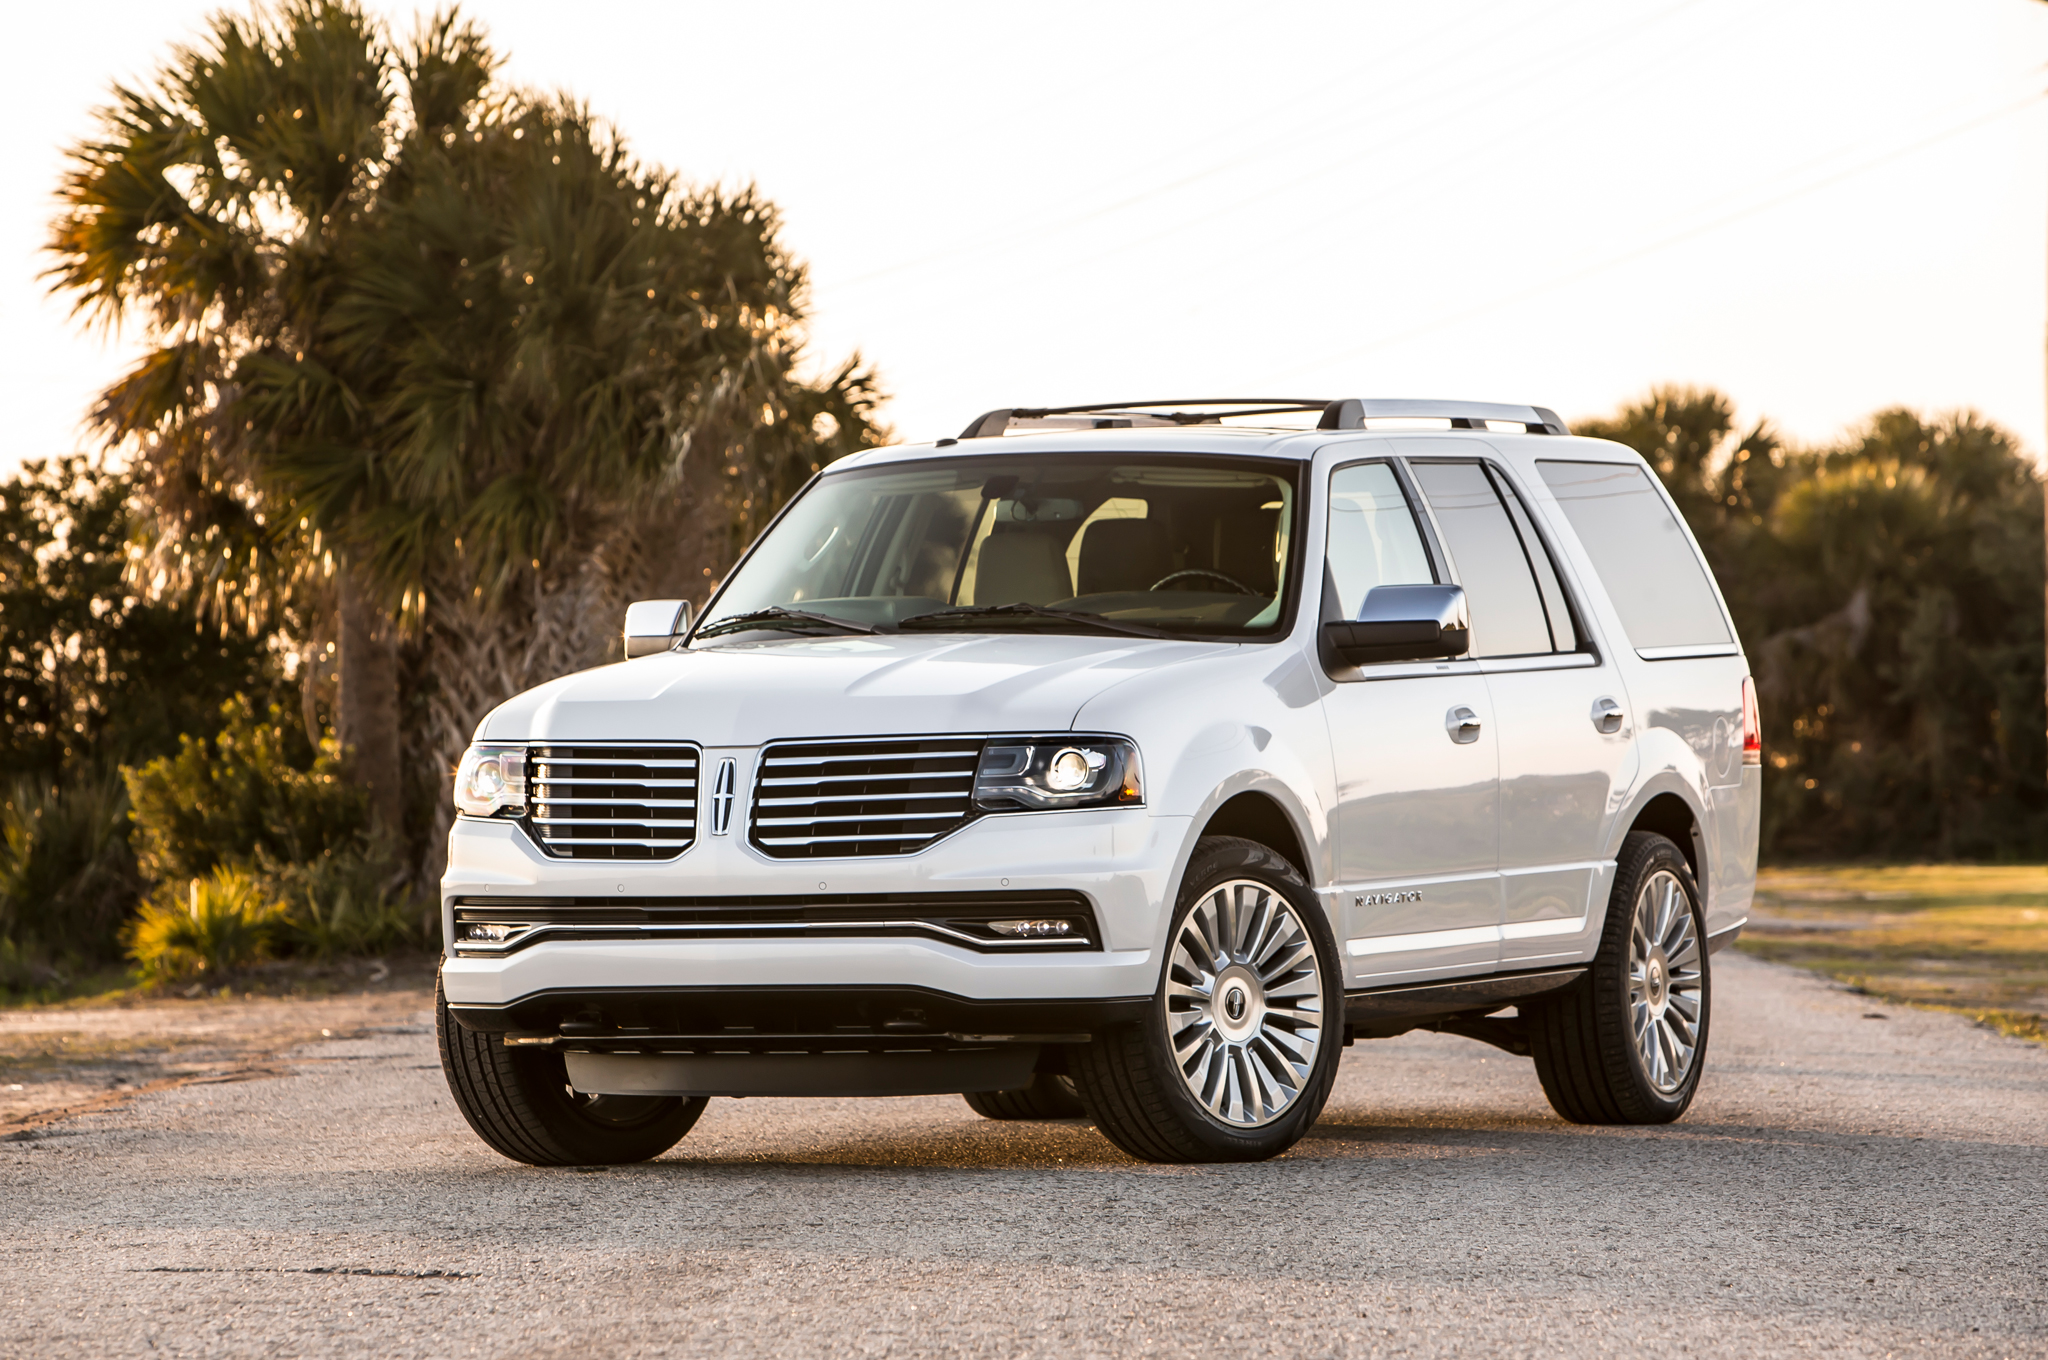 Top 10 Cool Facts About the 2015 Lincoln Navigator - Motor Trend